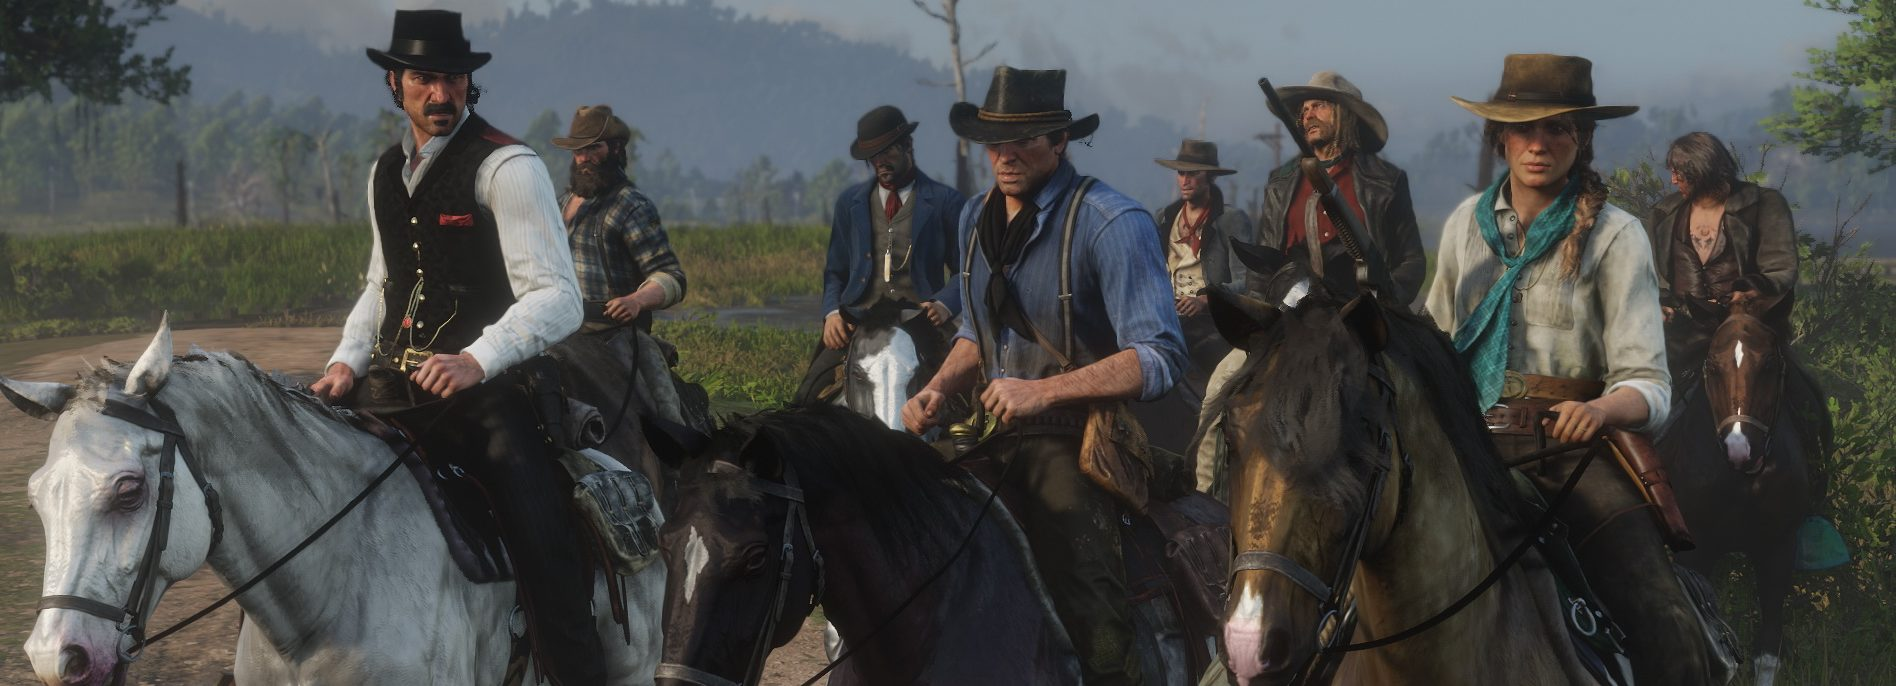 Red Dead Redemption 2 Gang 2